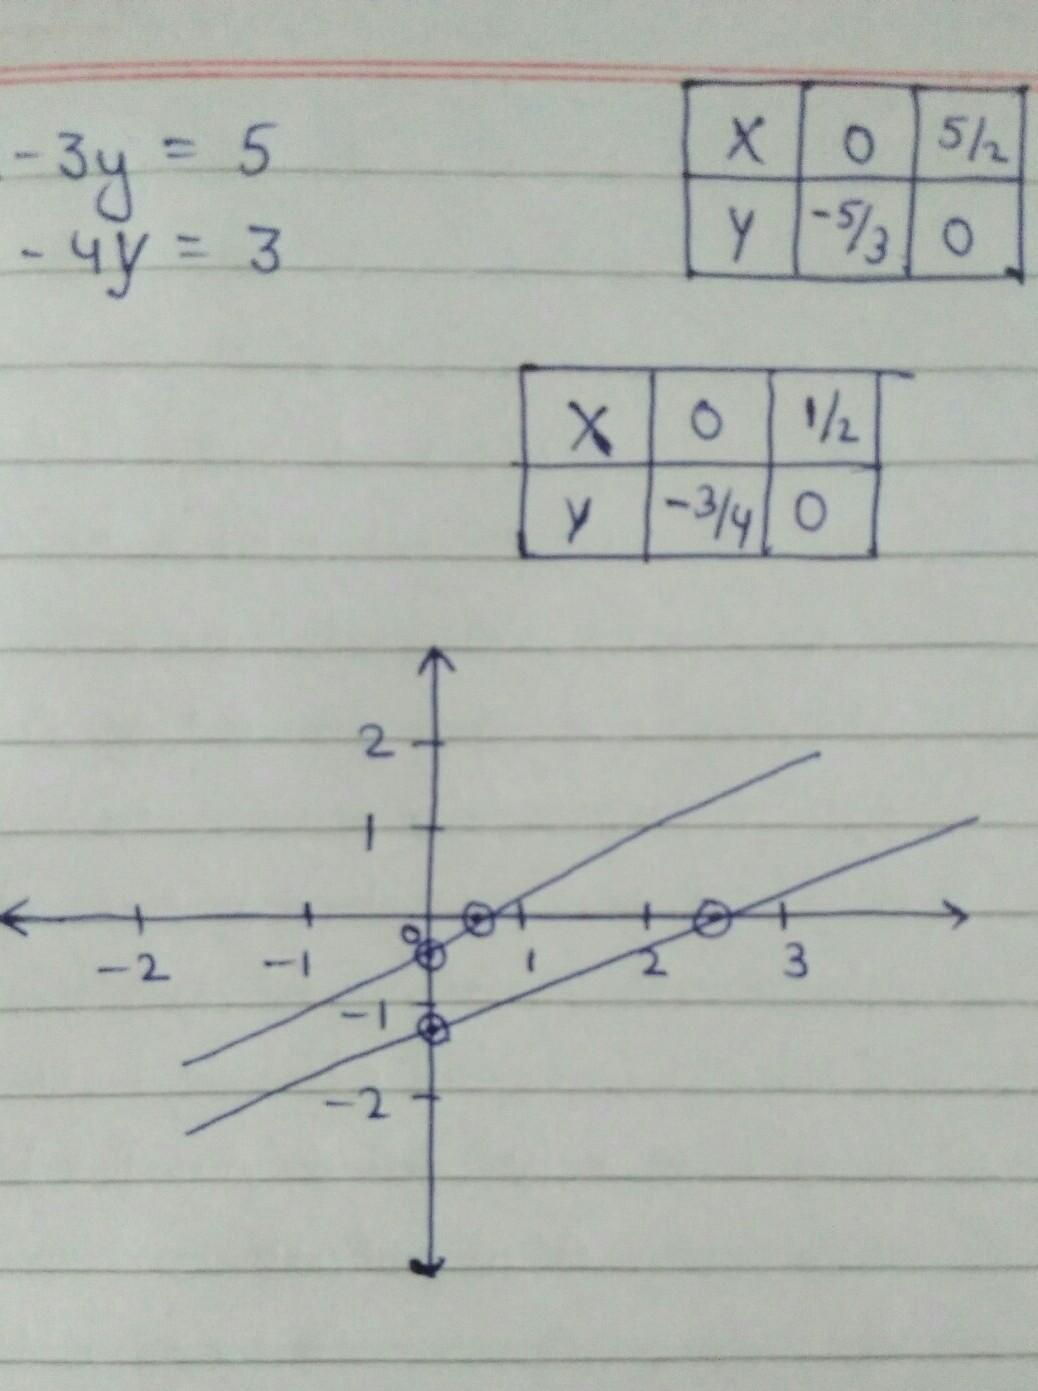 Show Graphically That The System Of Linear Equations Has